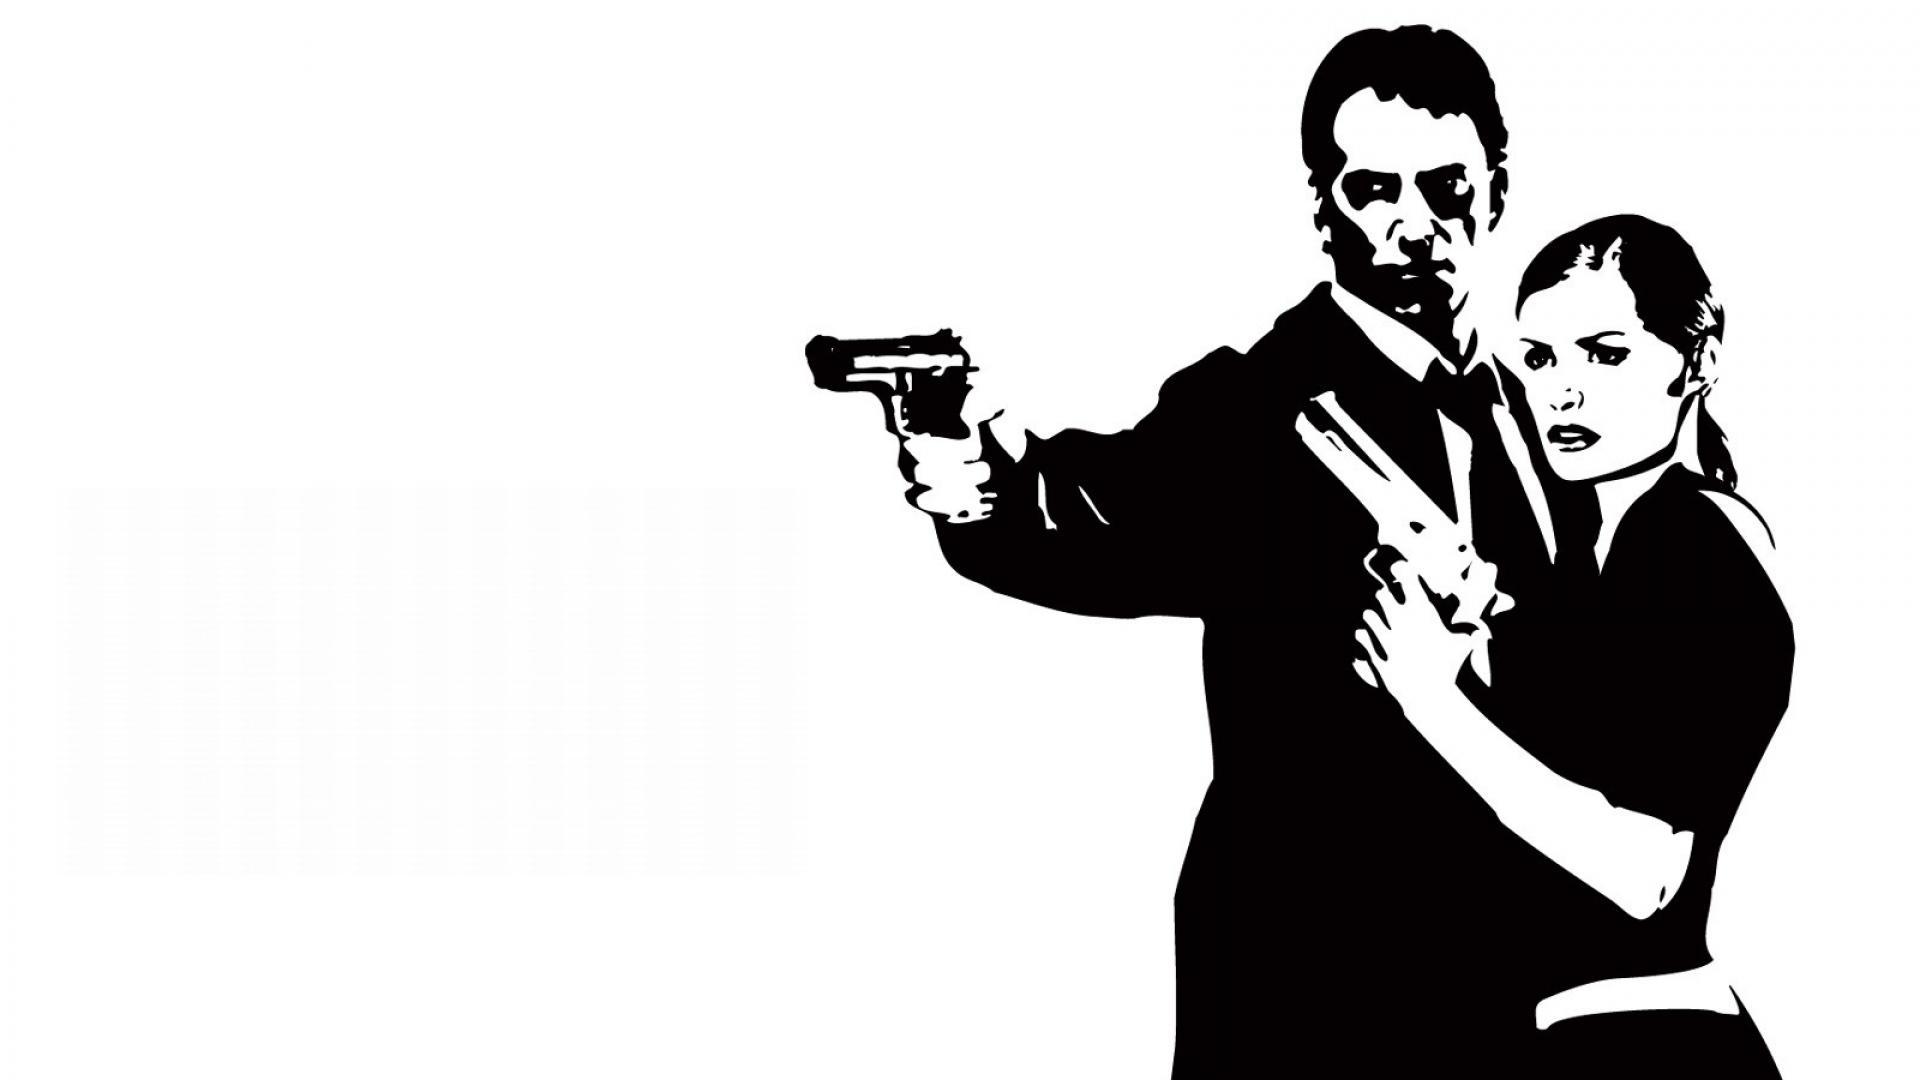 Download Wallpaper 1920x1080 Max Payne Female Pistols Look